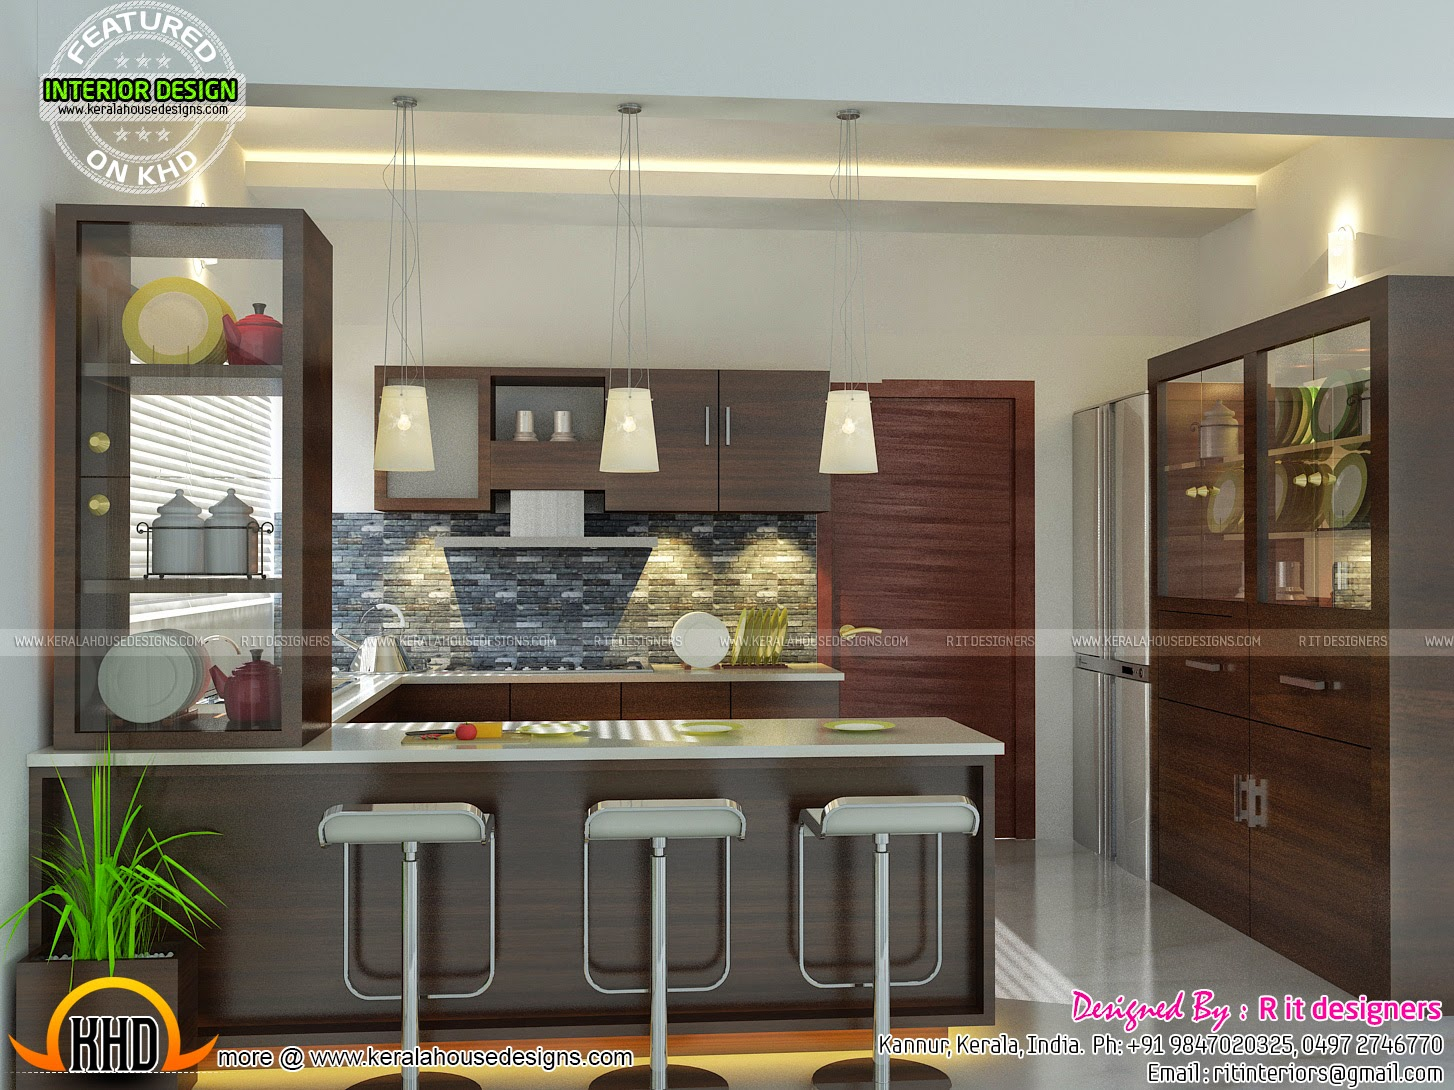 house designs kitchen modern and unique dining kitchen interior kerala home 1708